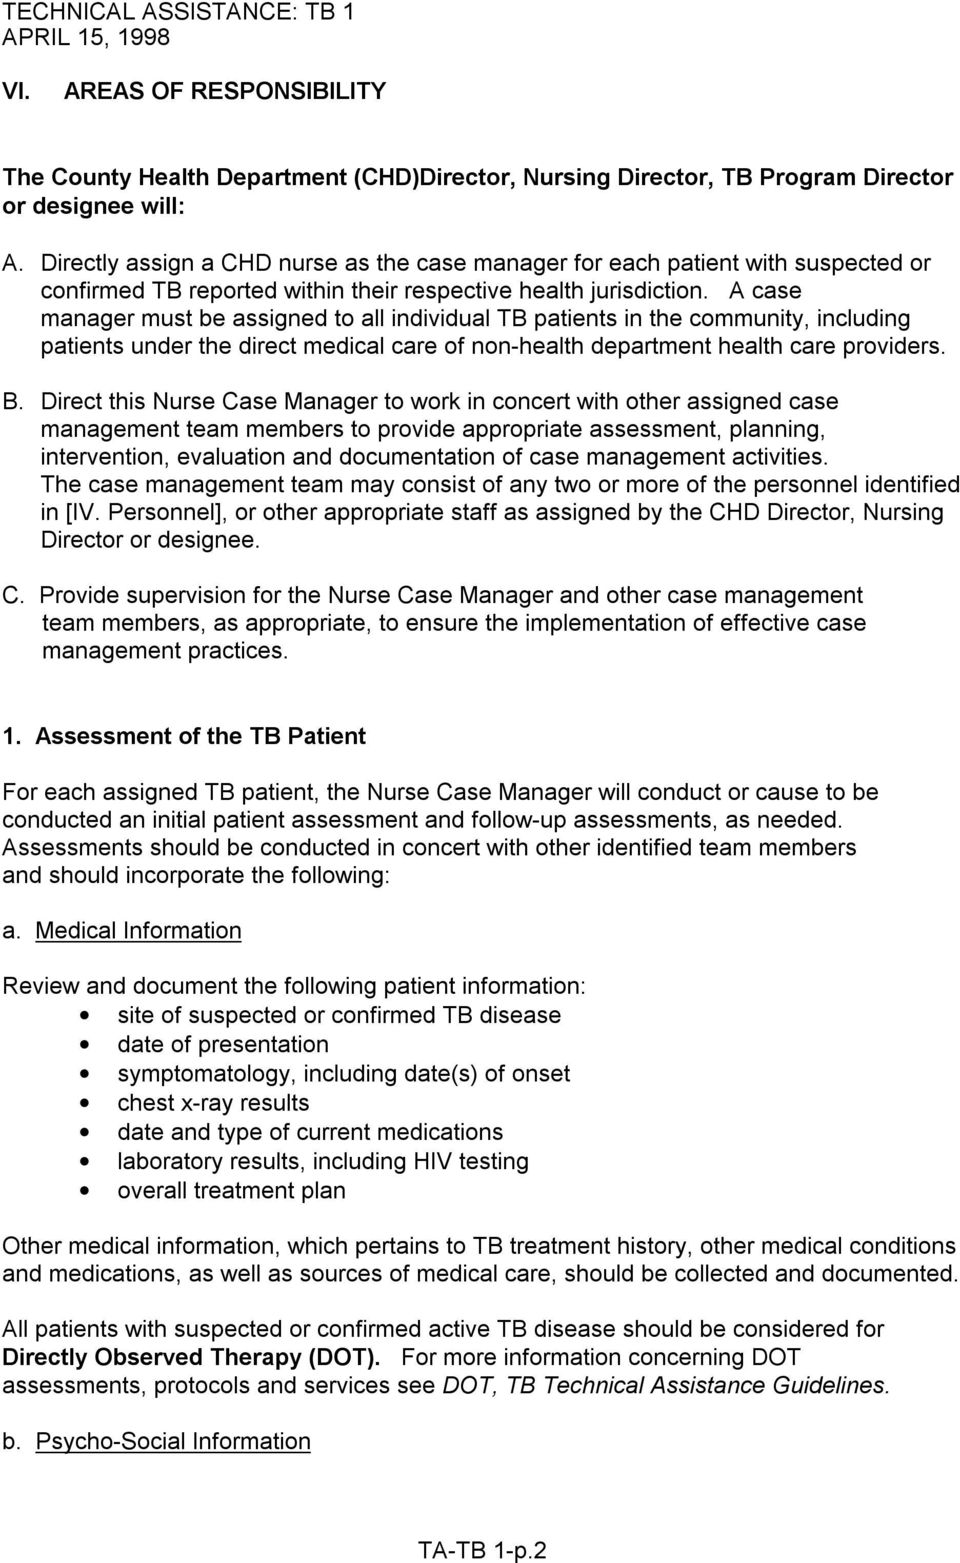 A case manager must be assigned to all individual TB patients in the community, including patients under the direct medical care of non-health department health care providers. B.